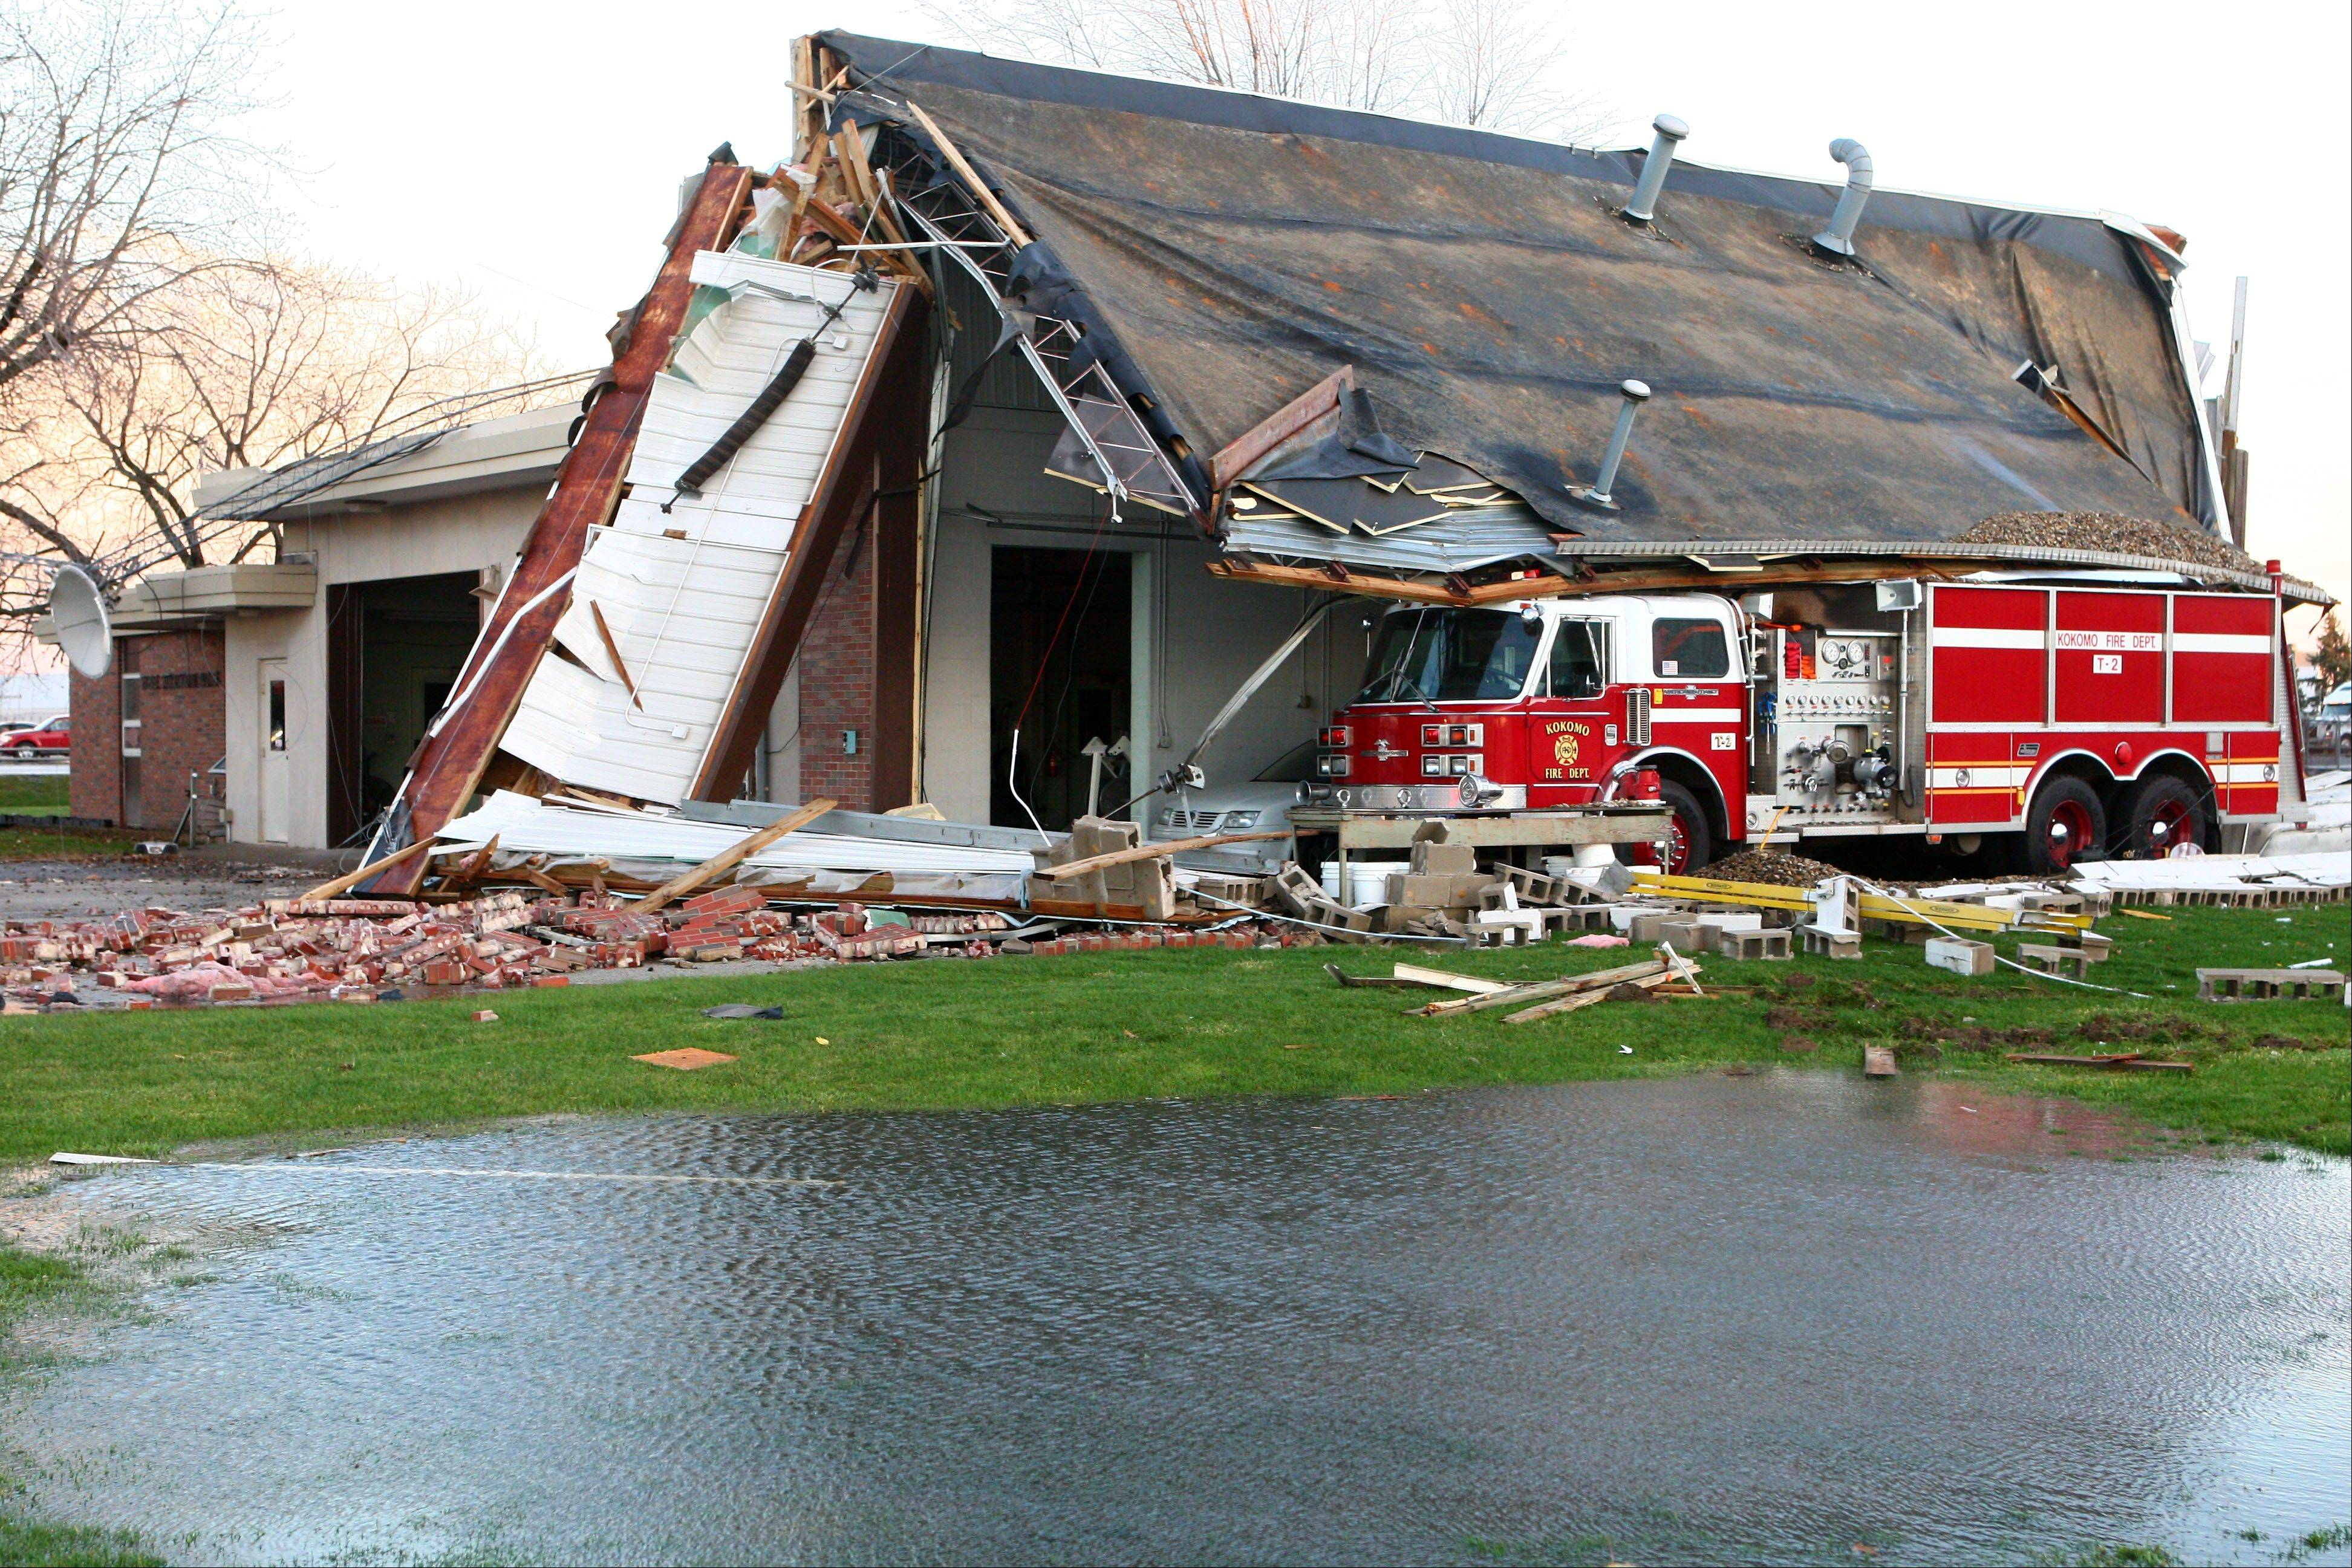 Sunday's tornado caused major damage to Fire Station No. 6 in Kokomo, Ind. on Nov. 17, 2013.